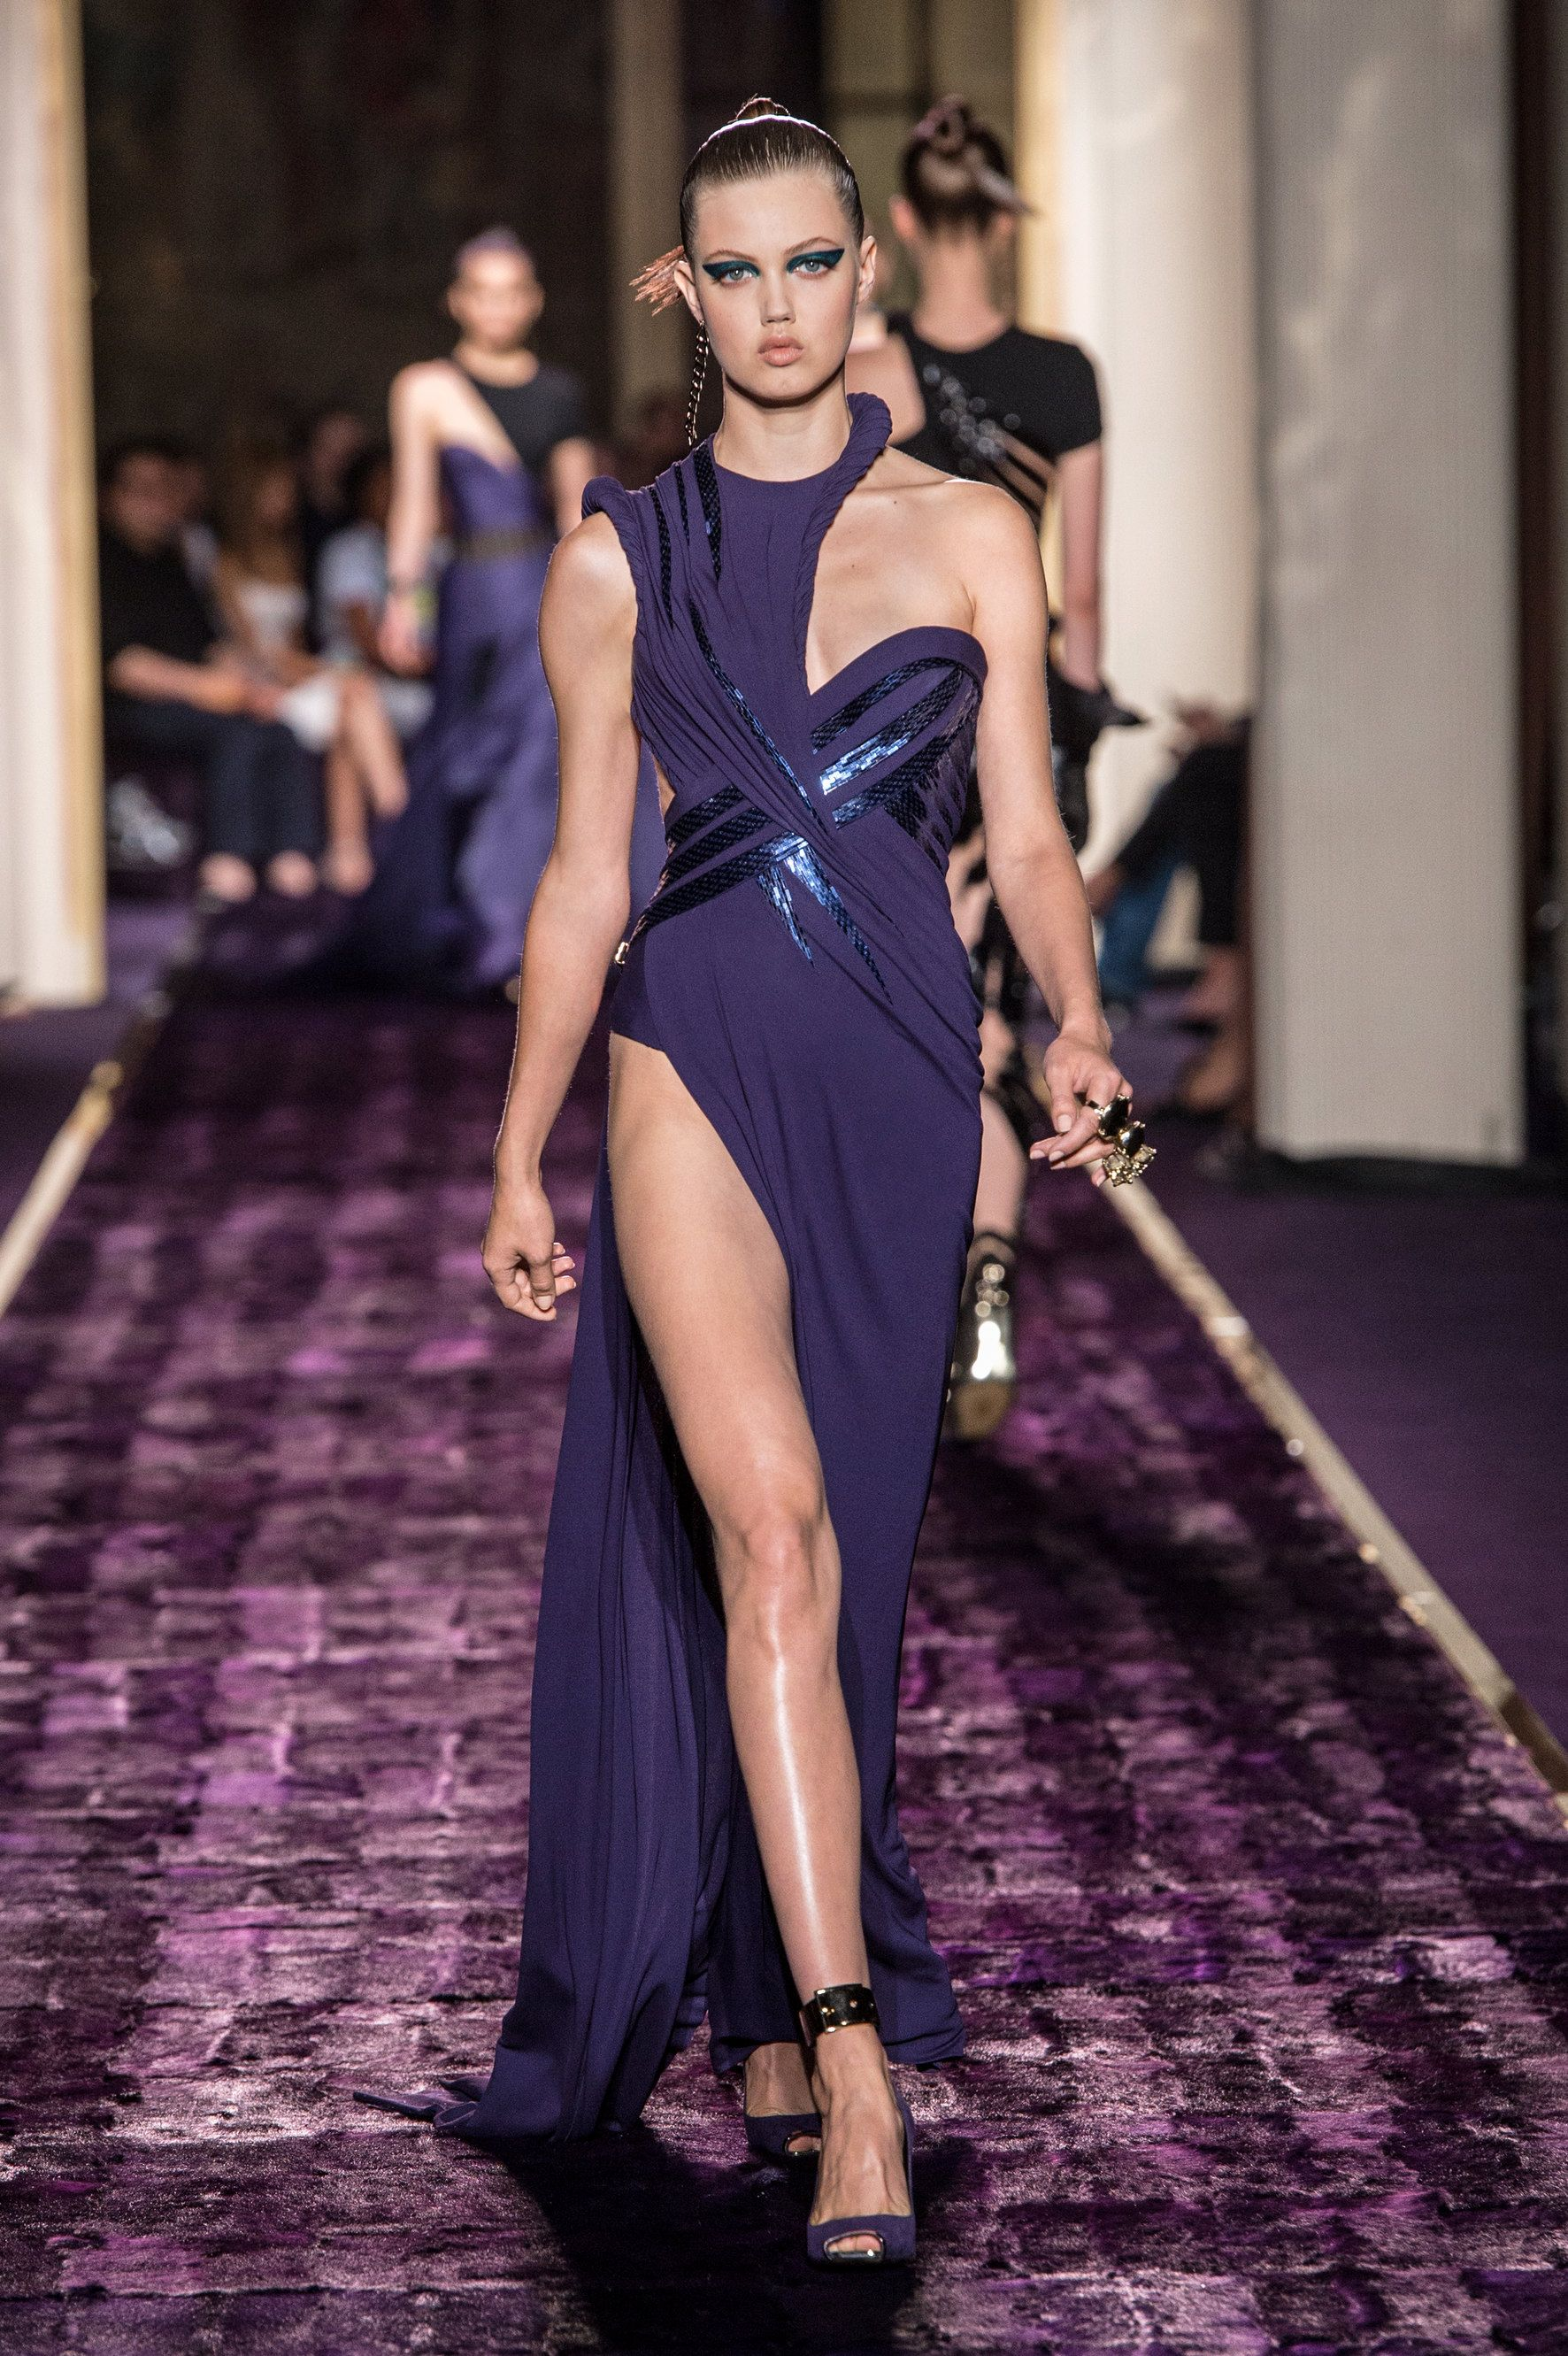 Look 15 - #AtelierVersace Fall/Winter 2014 fashion show. #Versace ...